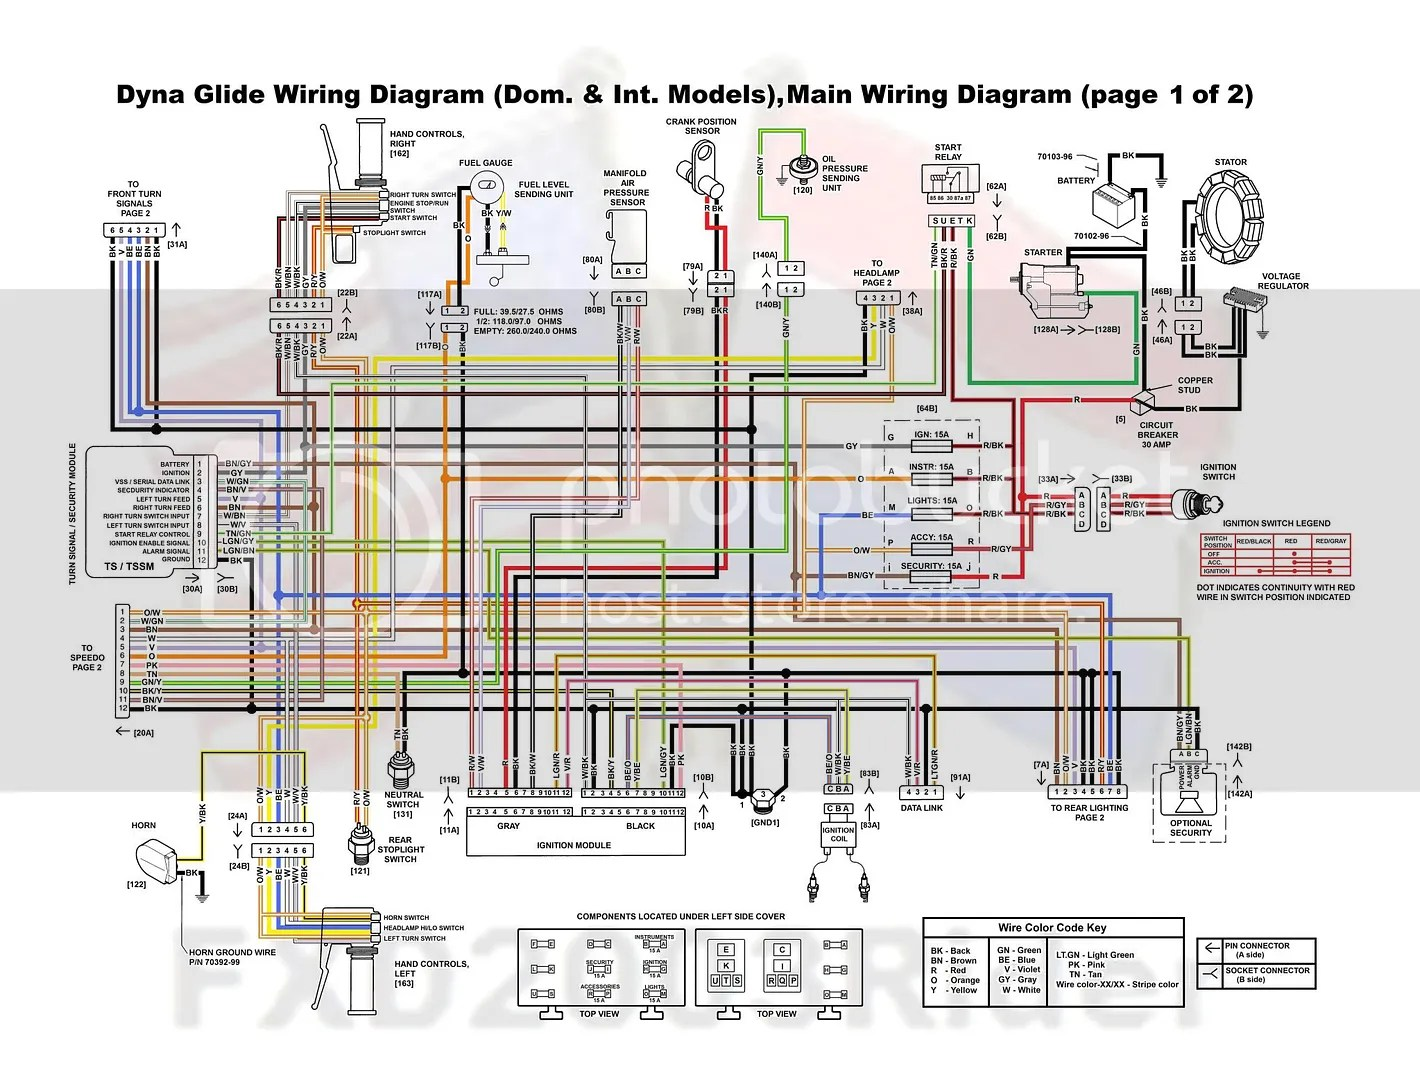 hight resolution of wiring diagram for a mini harley 43cc wiring diagram mini harley 43cc scooter wiring diagram